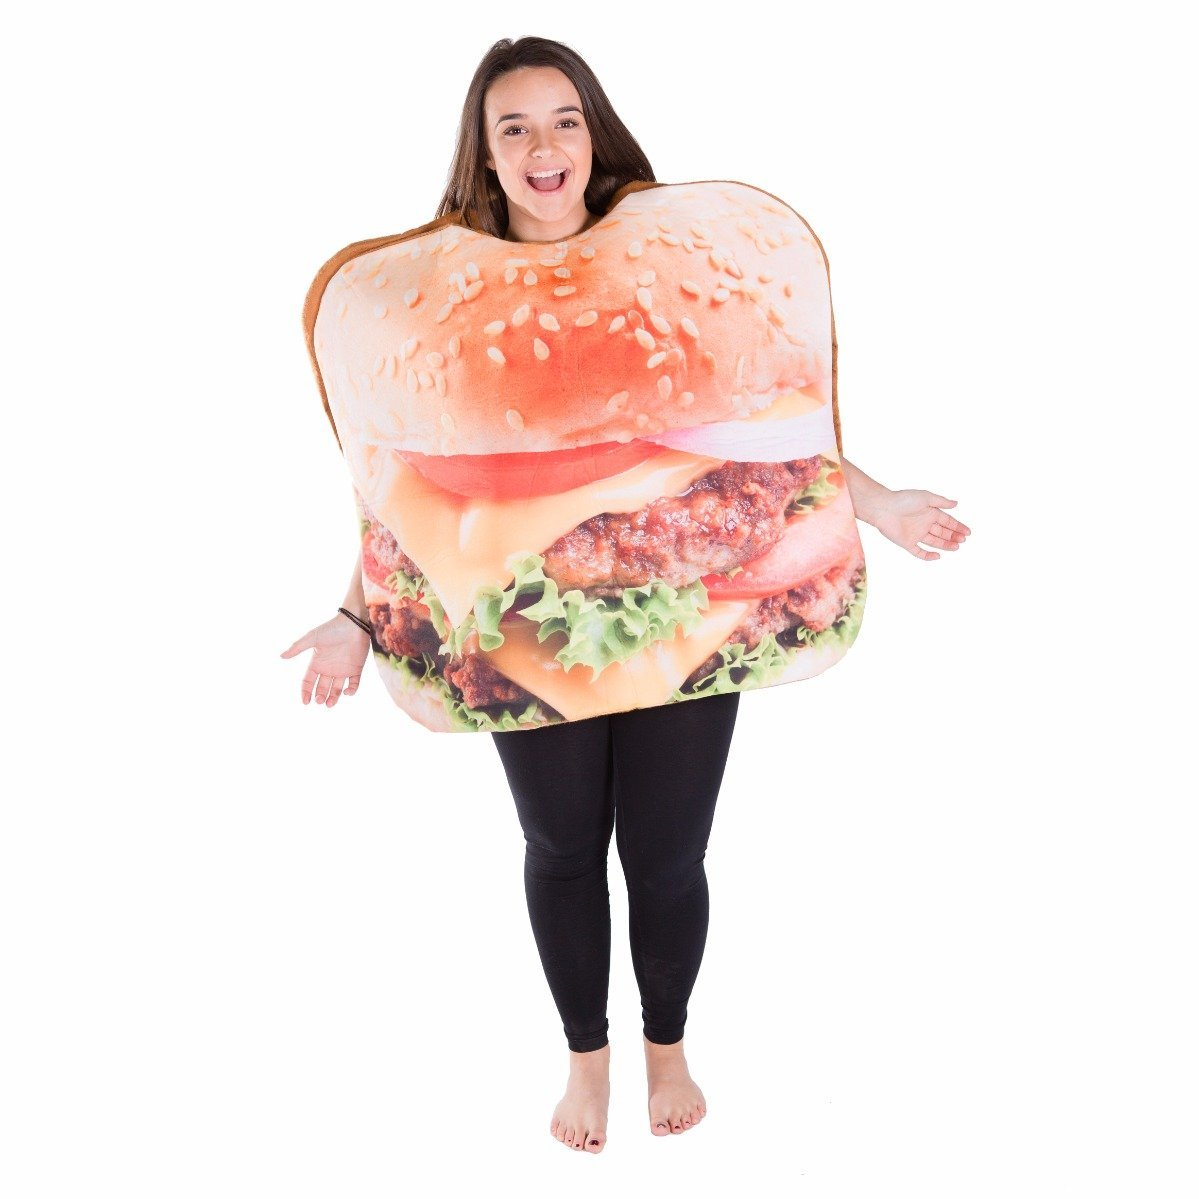 Bodysocks - Burger Costume